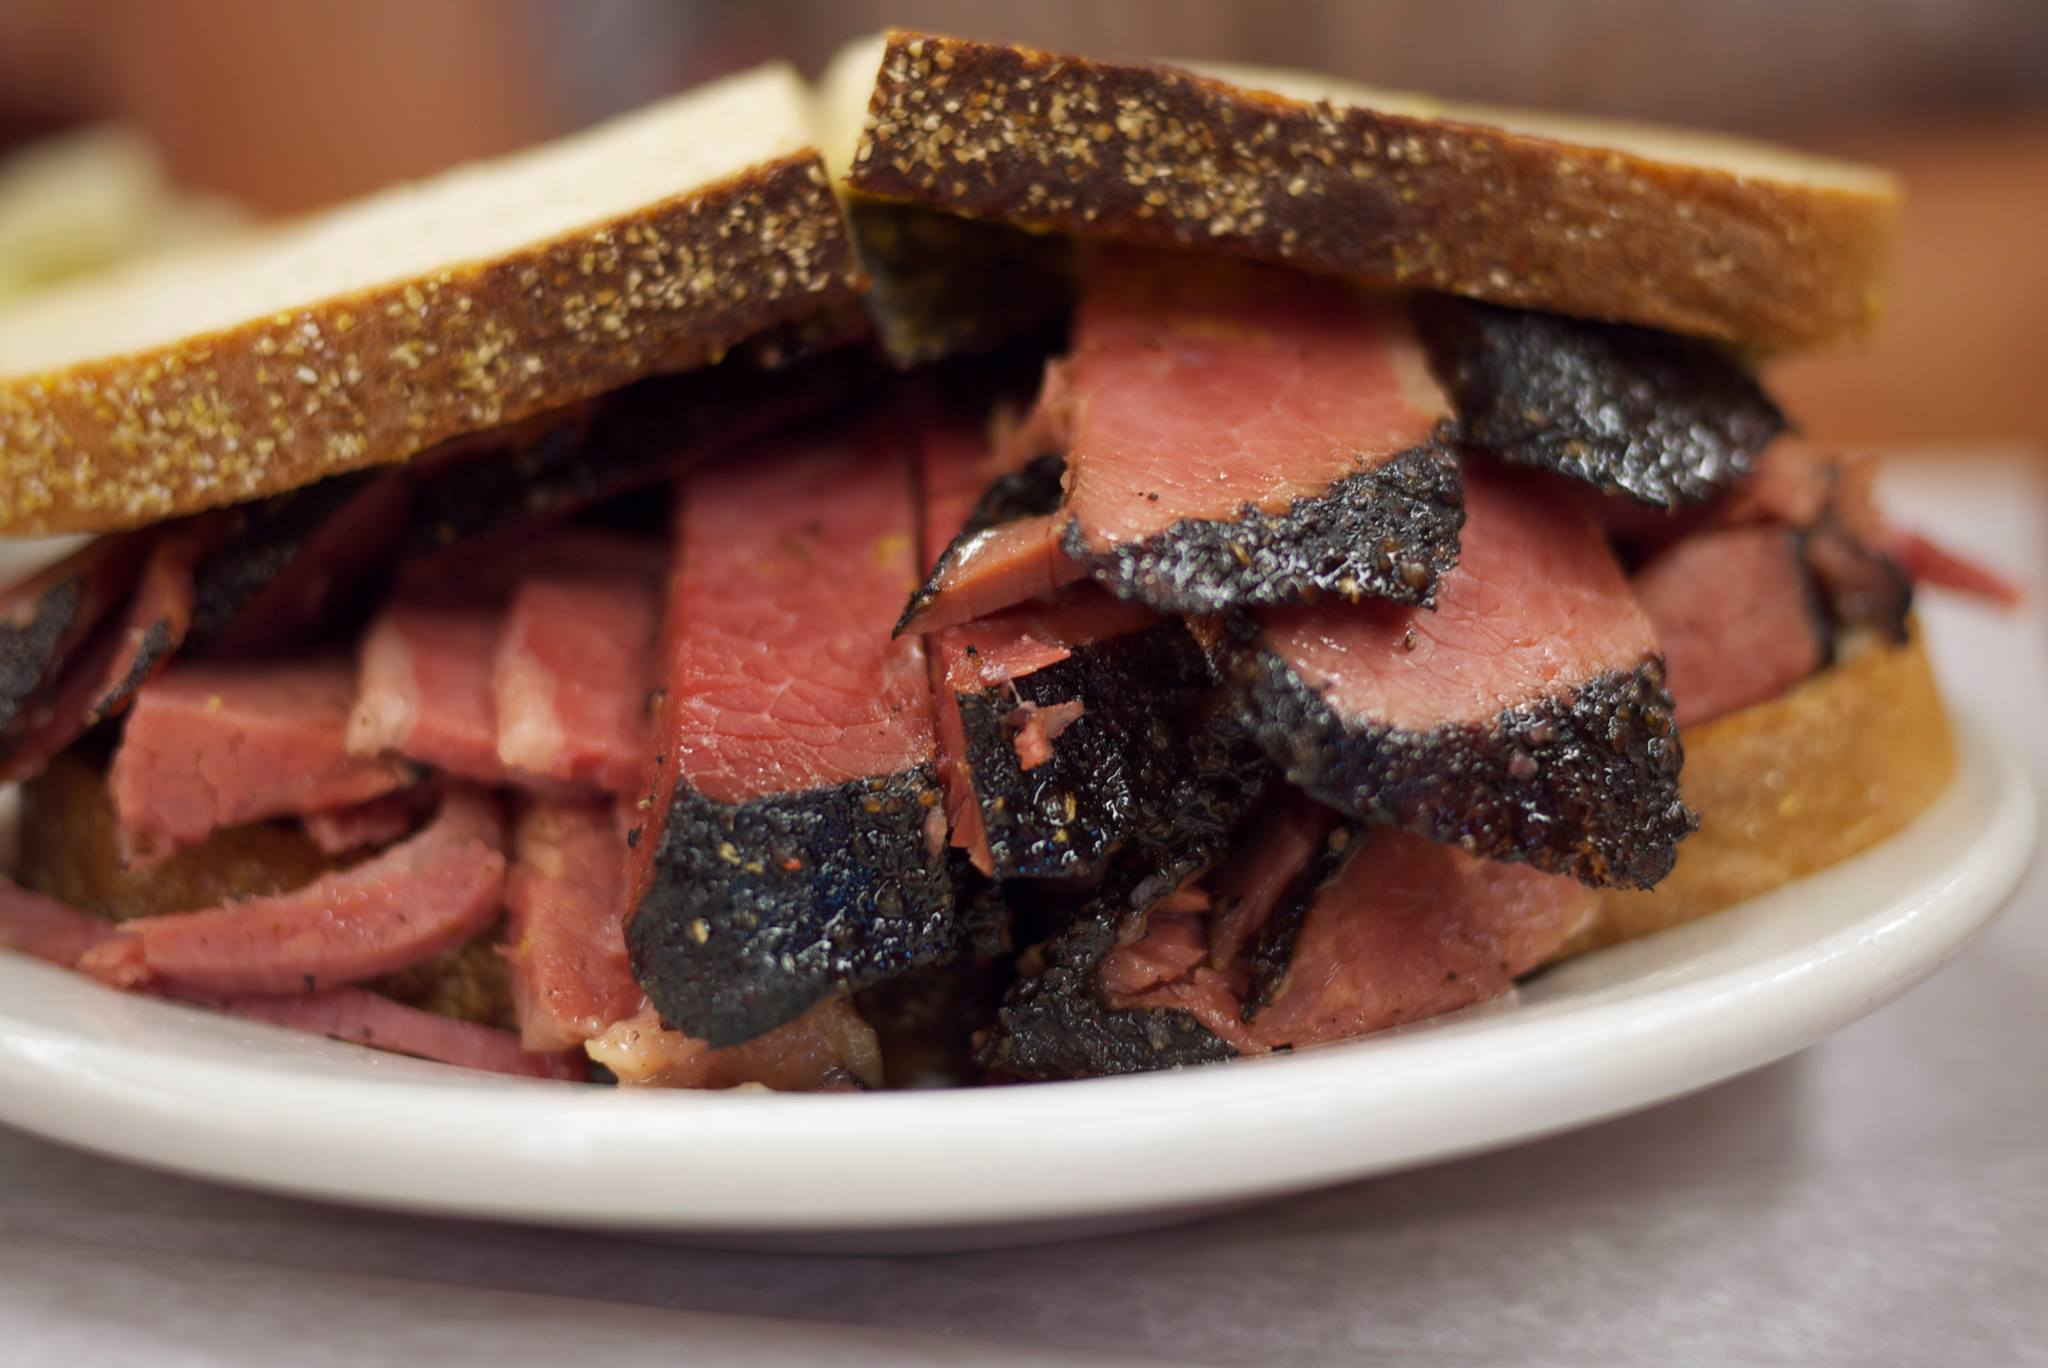 Hand-carved hot pastrami at Katz's Deli - this one looks to have been ordered extra lean, not a great idea.